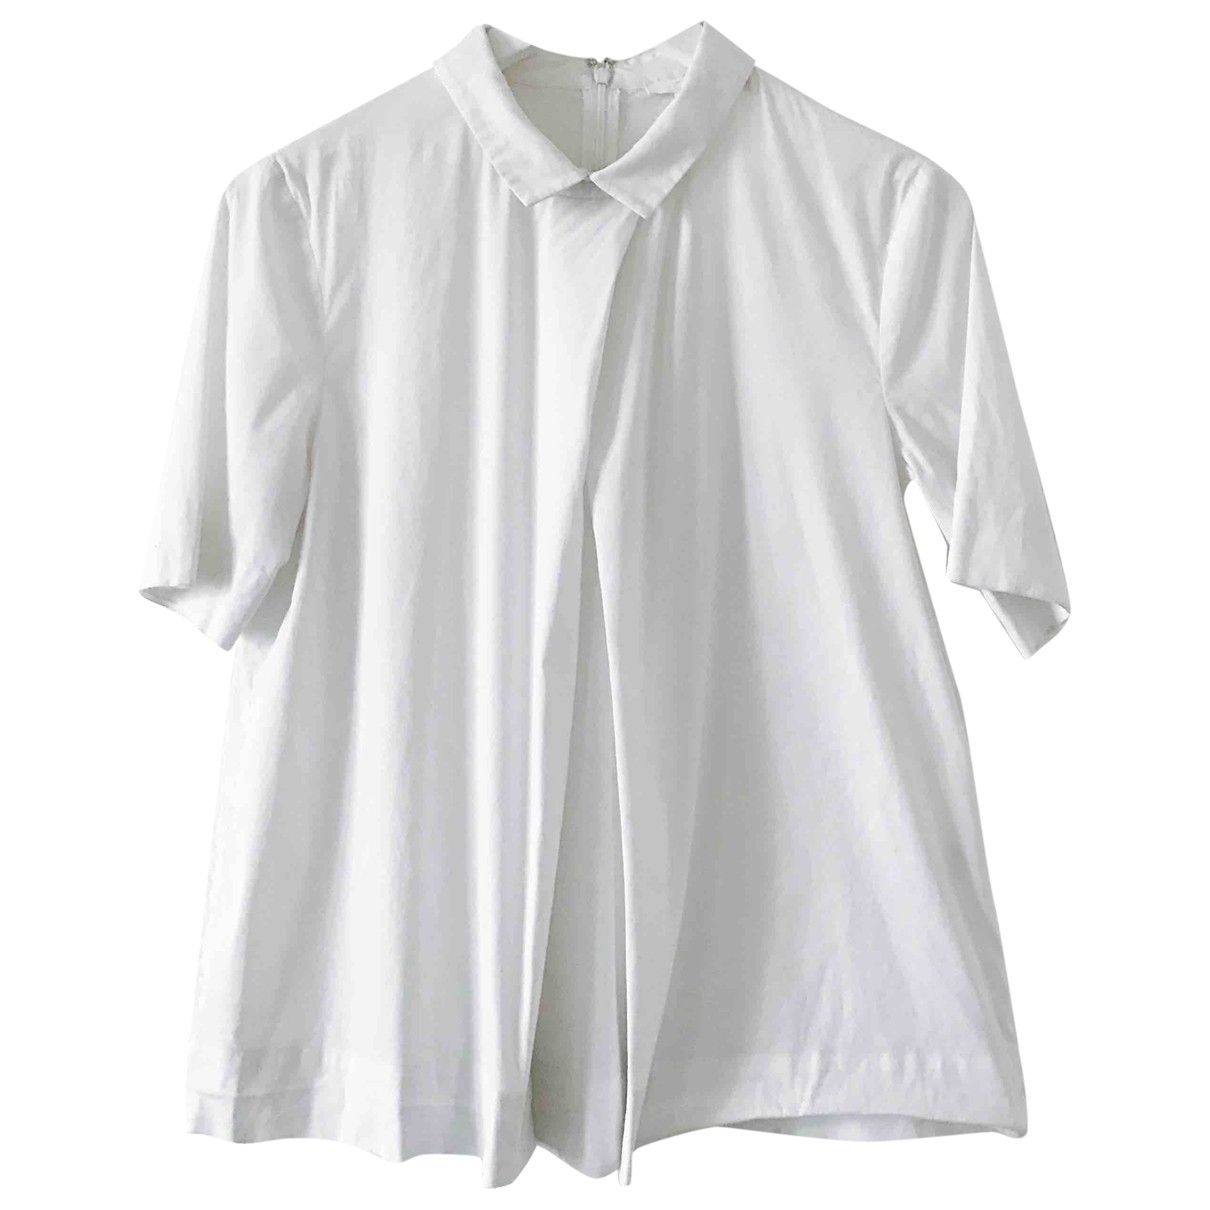 Cos \N White Cotton  top for Women 38 FR